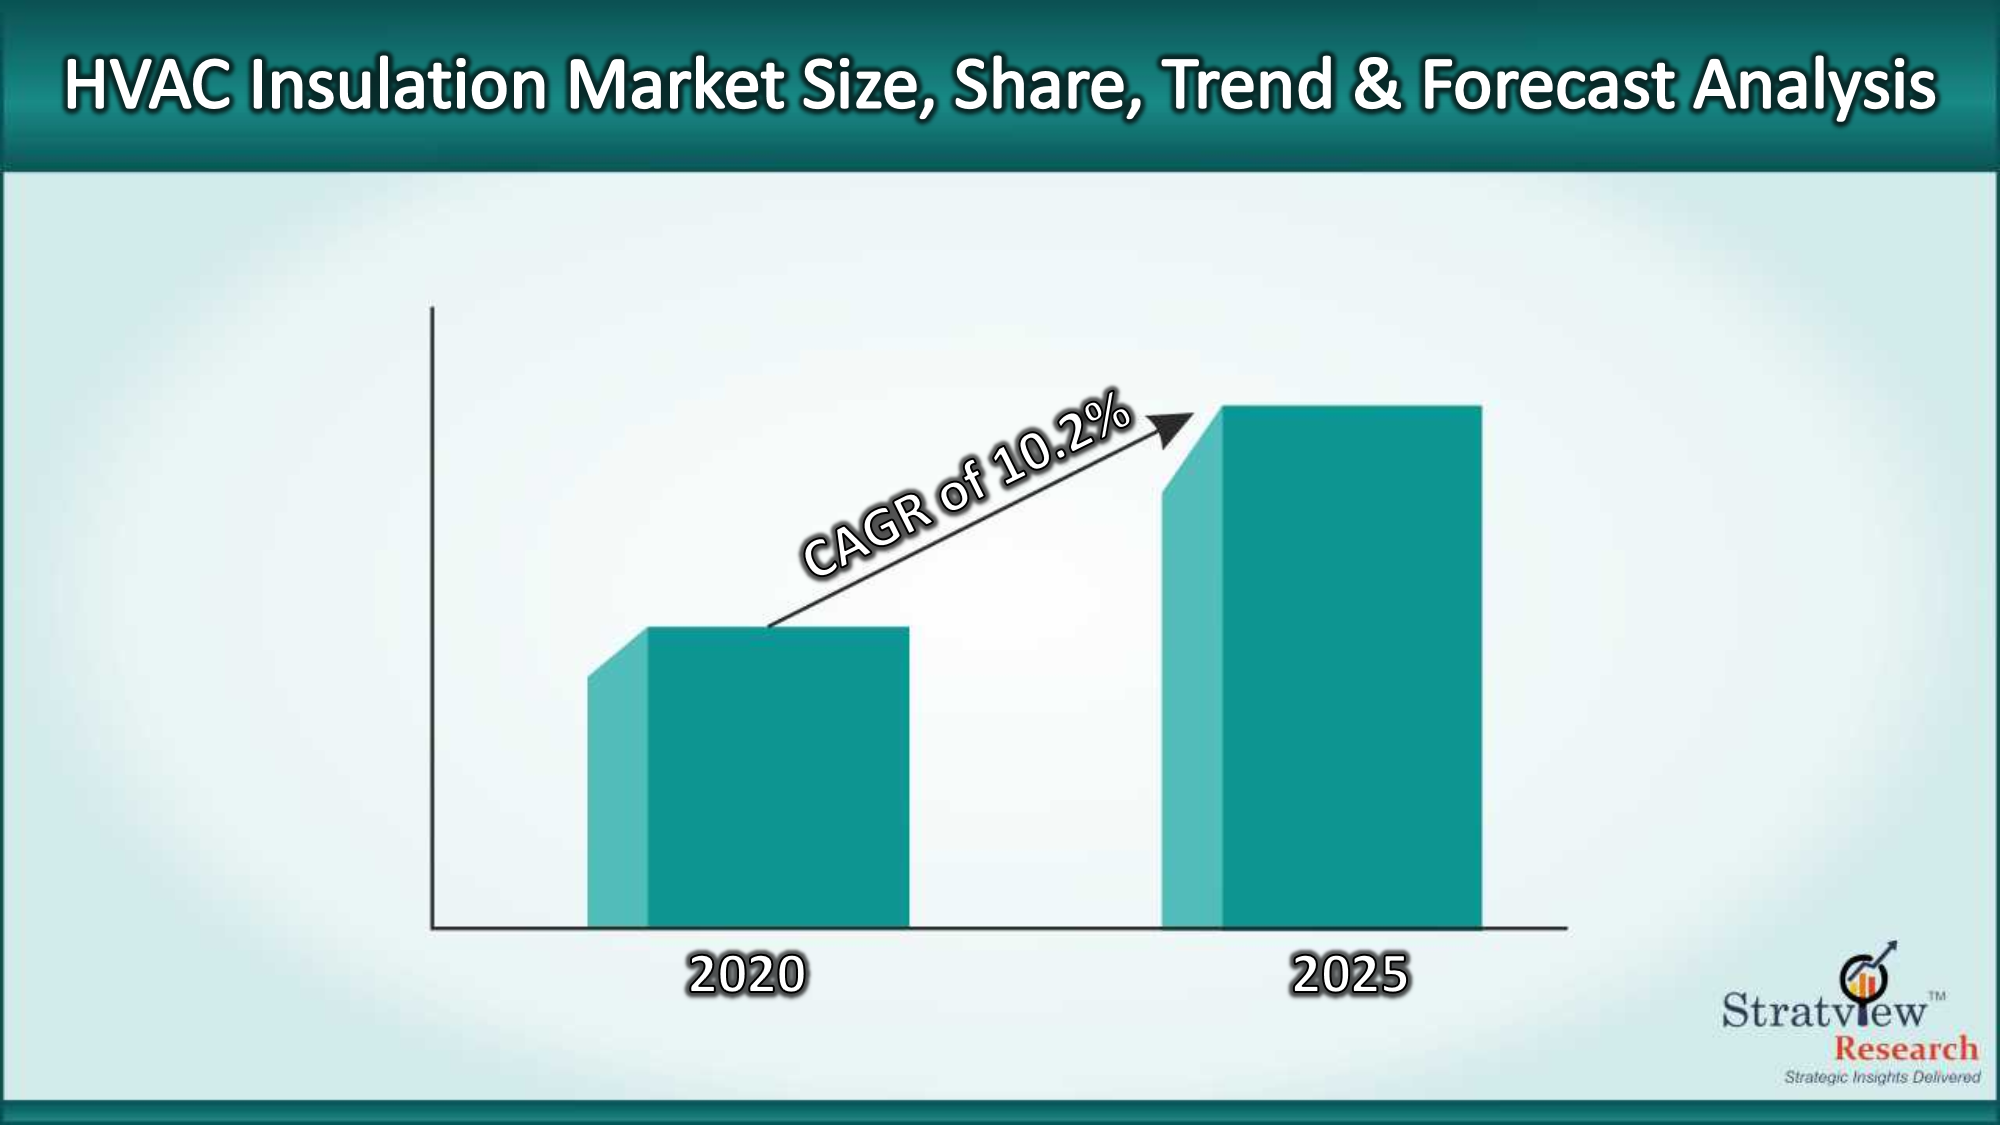 HVAC Insulation Market to offer profitable growth during 2020-25 with a healthy CAGR of 10.2%